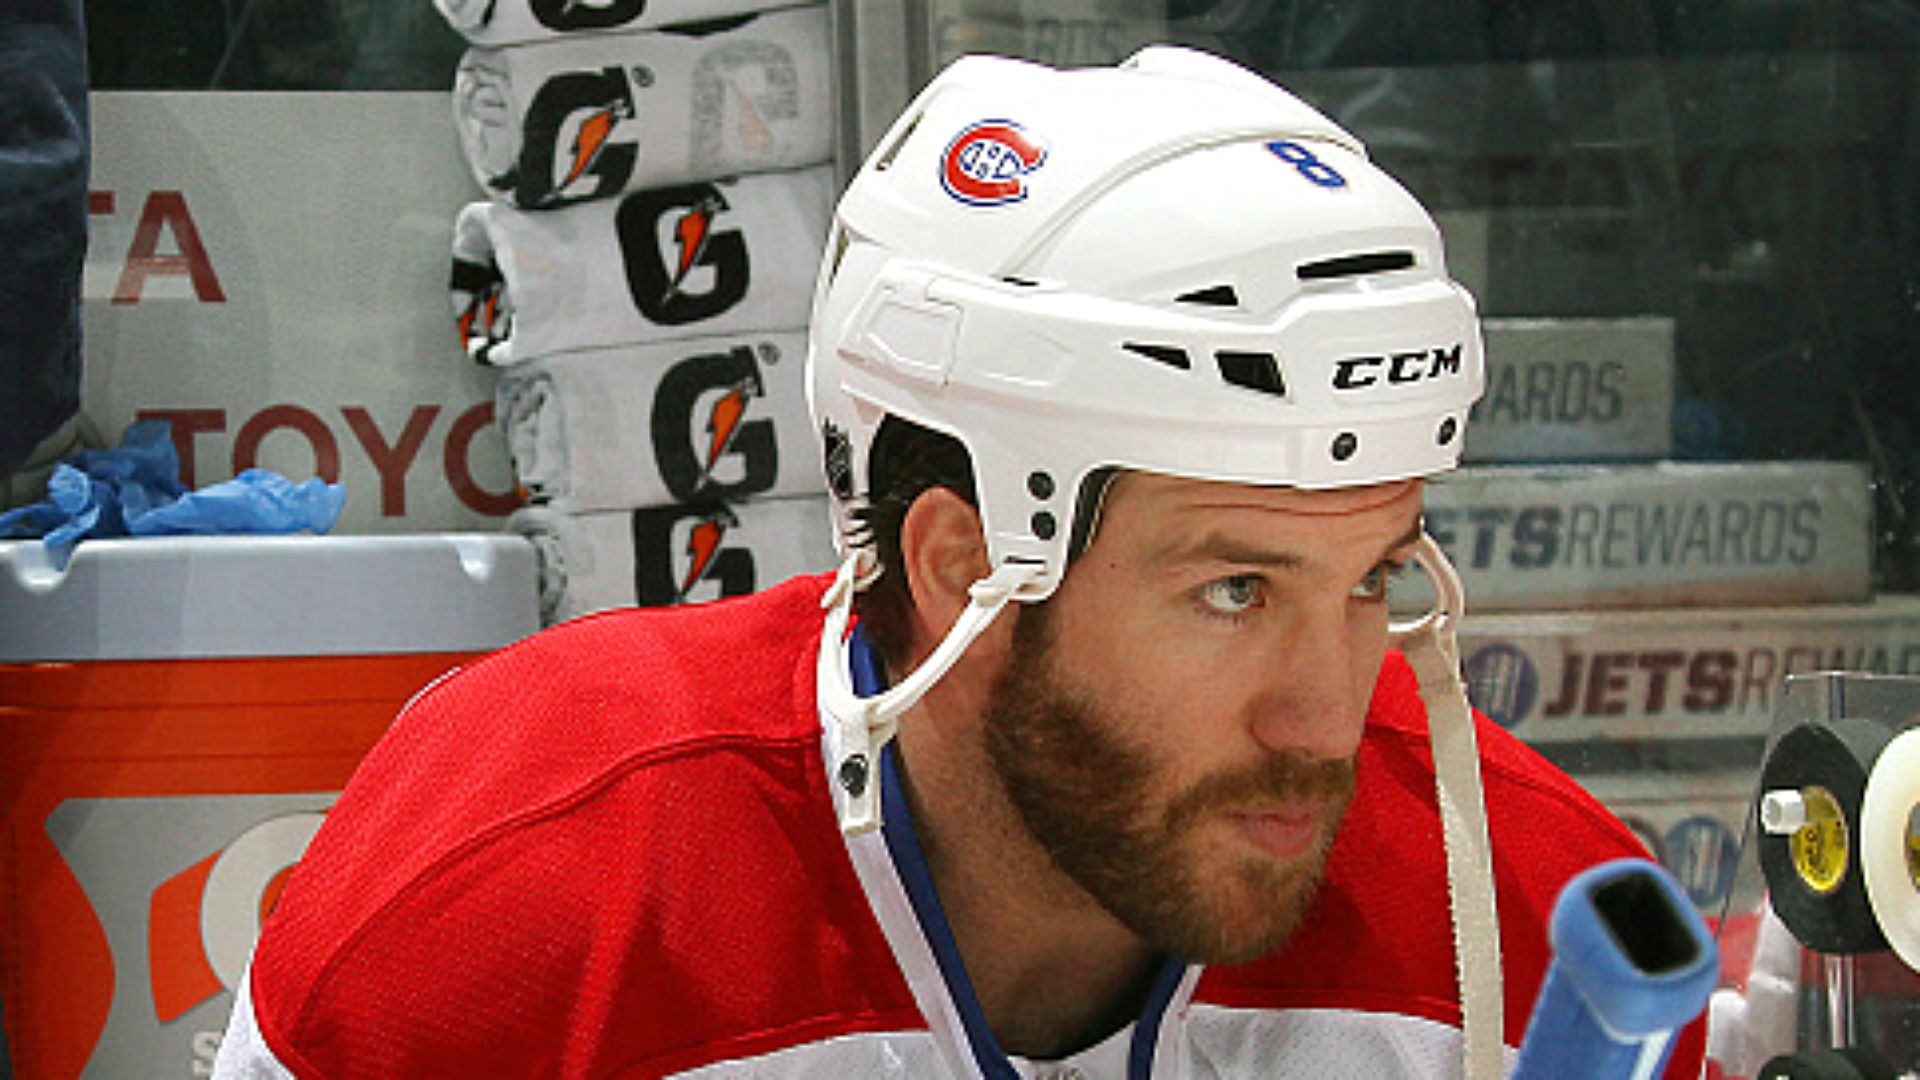 Brandon-Prust-050515-getty-ftr.jpg